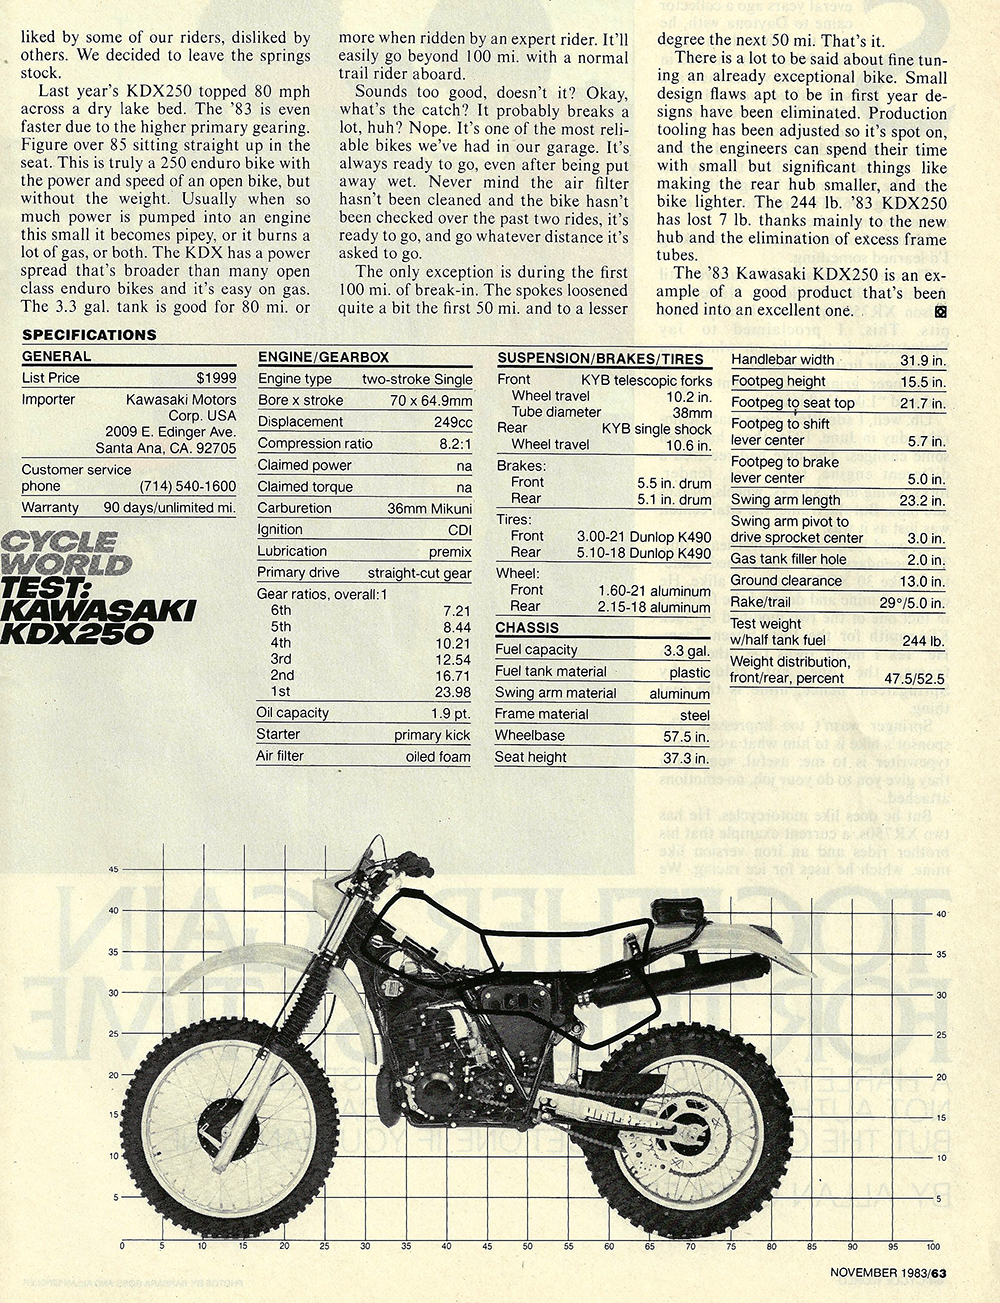 1983 Kawasaki kdx250 road test 04.jpg